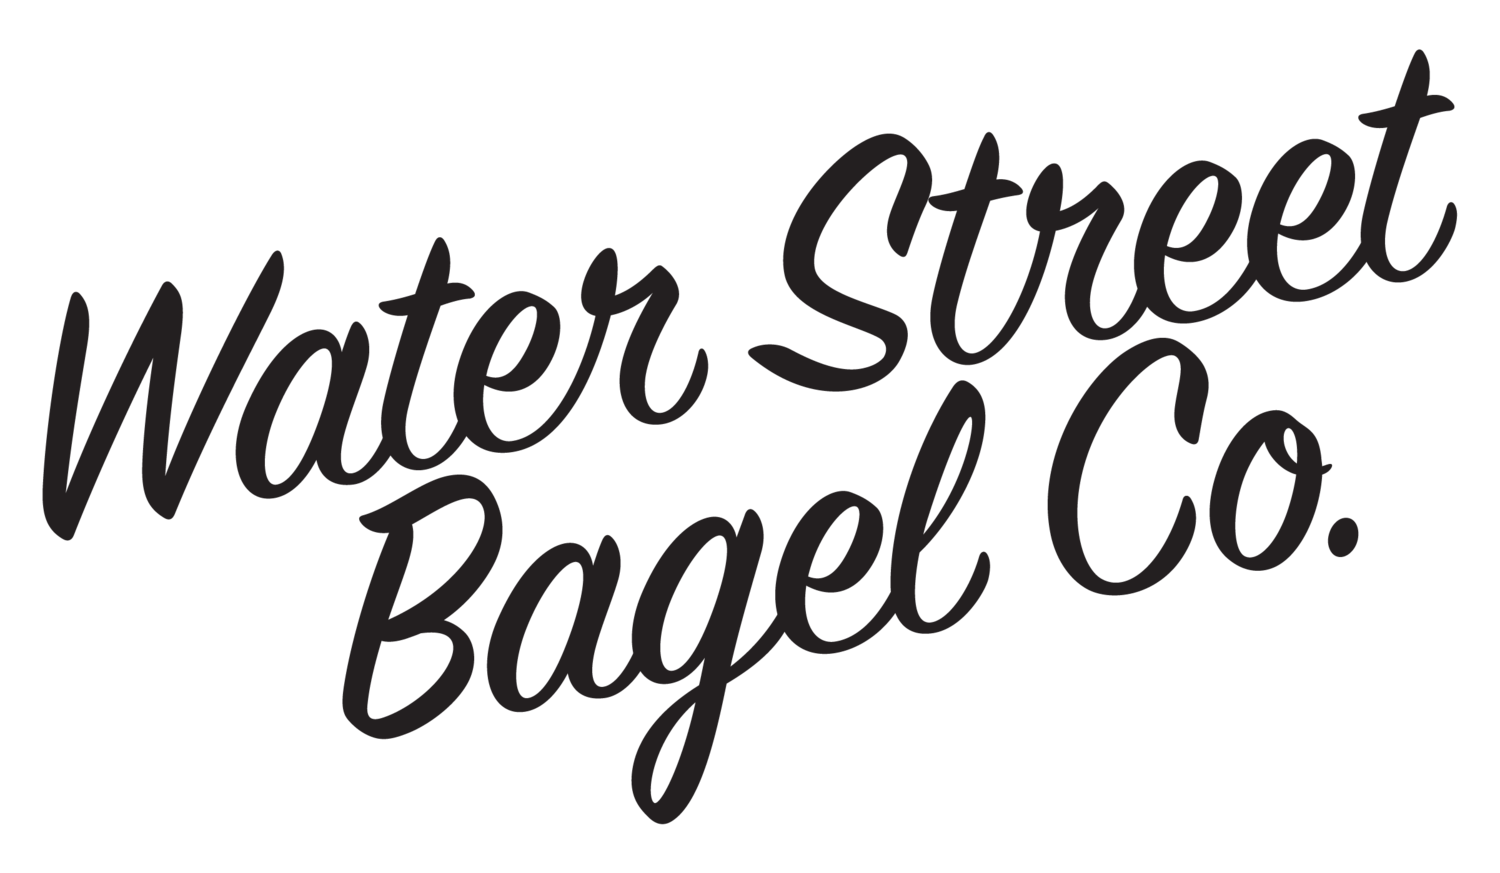 Water Street Bagel Co